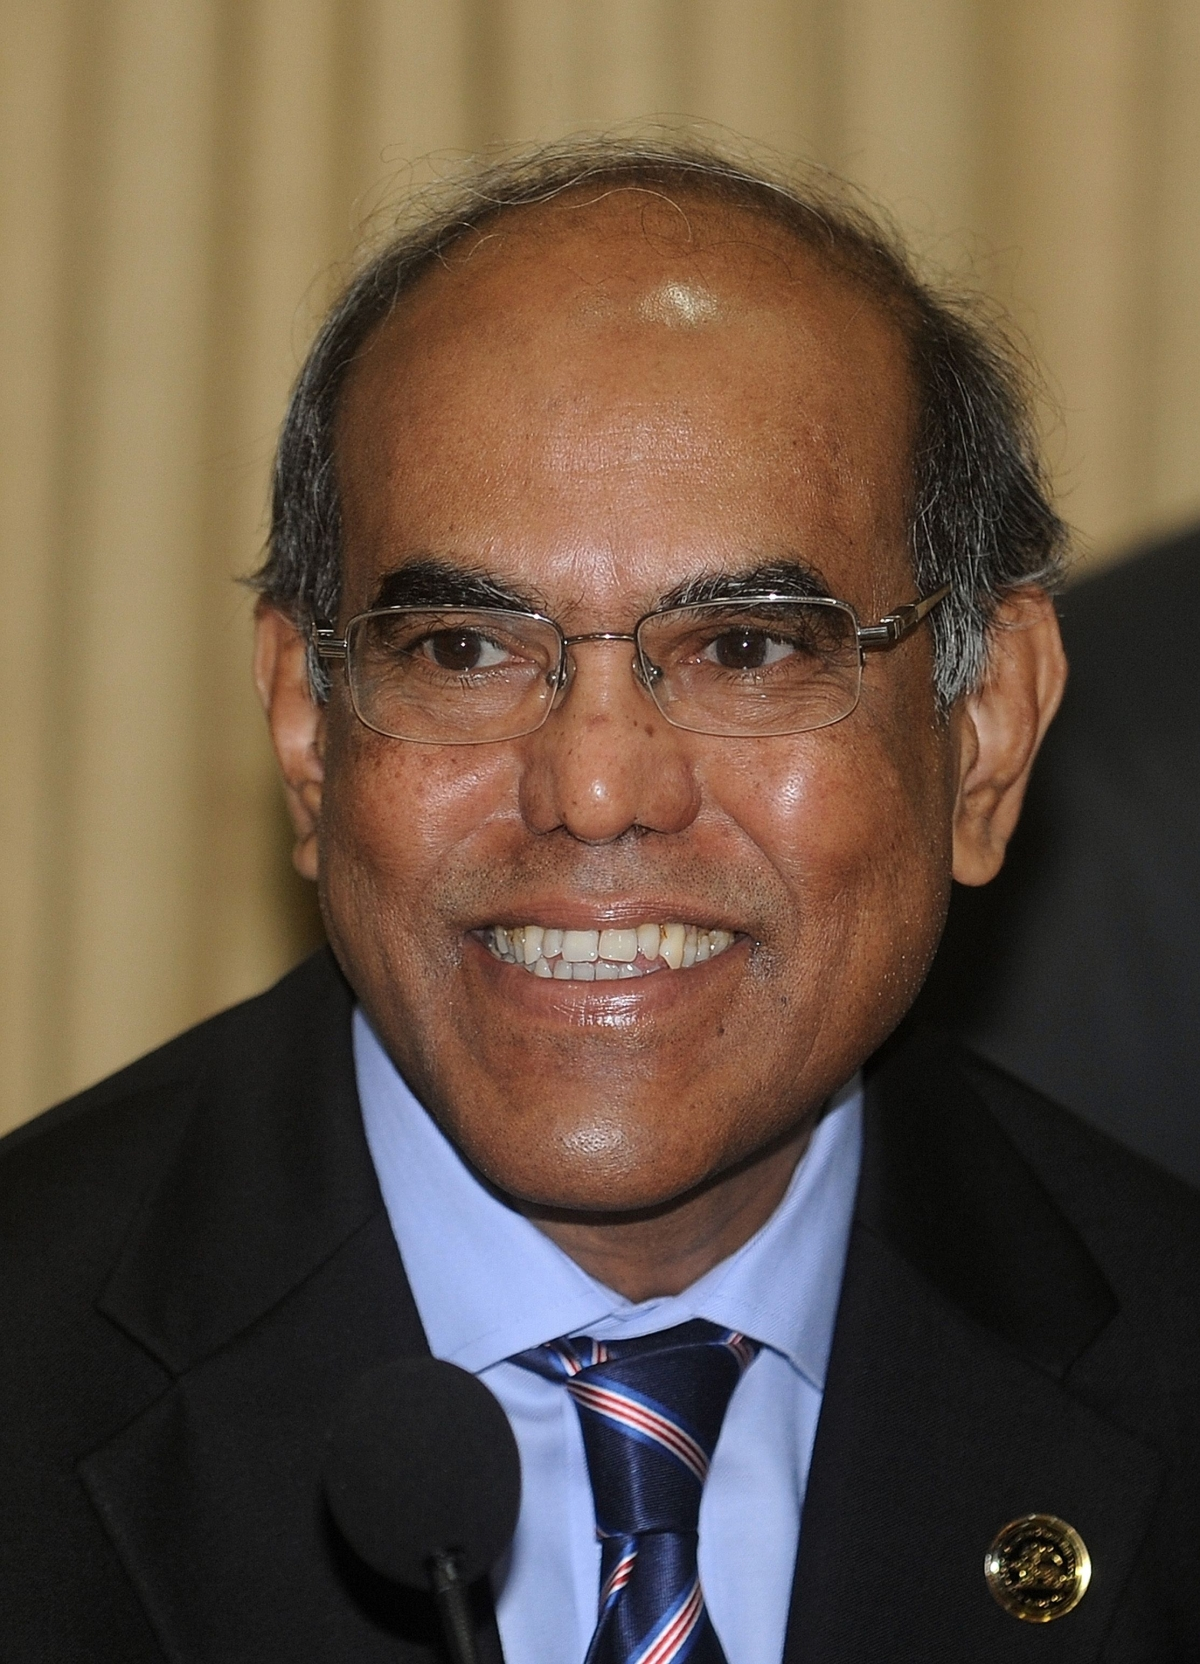 Post COVID-19, India can bet on 3 positives for economic revival: RBI Governor Duvvuri Subbarao Rao